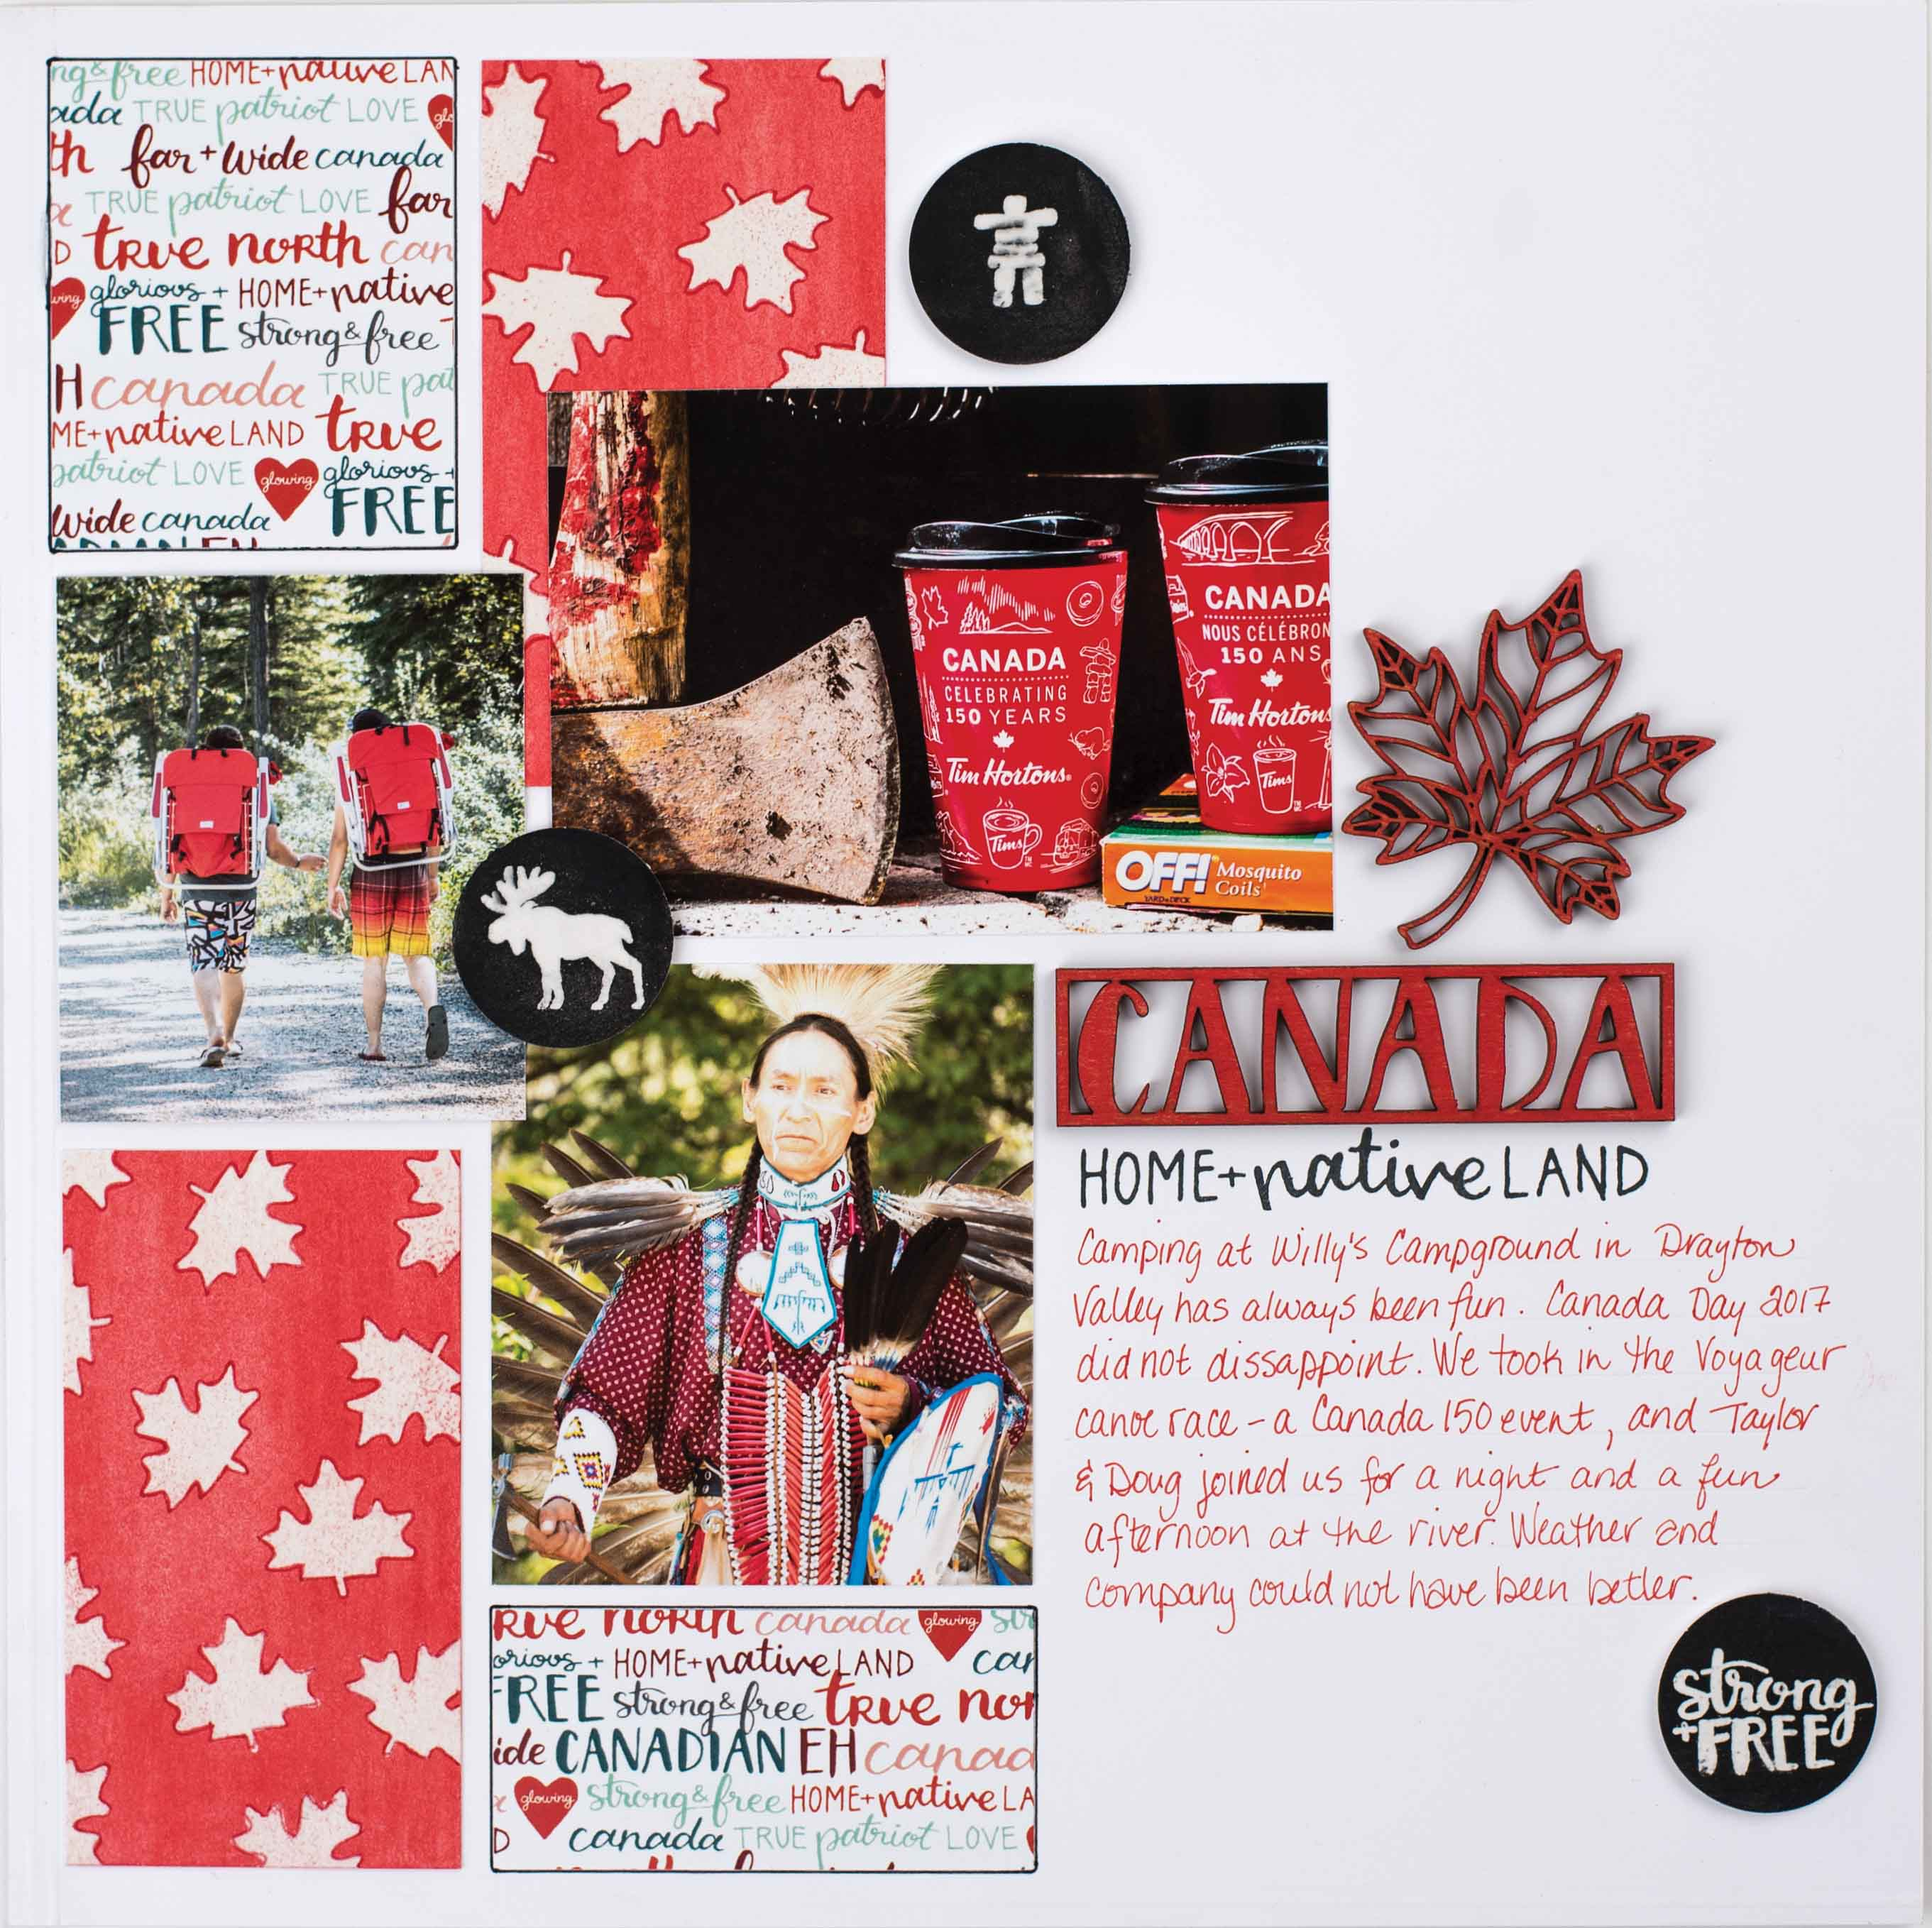 Canadian Themed Scrapbook Layout | Featuring Wild Whisper Designs Straon & Free Collection | Designed by Kim Gowdy | Creative Scrapbooker Magazine #scrapbooking #wildwhisper #canadian